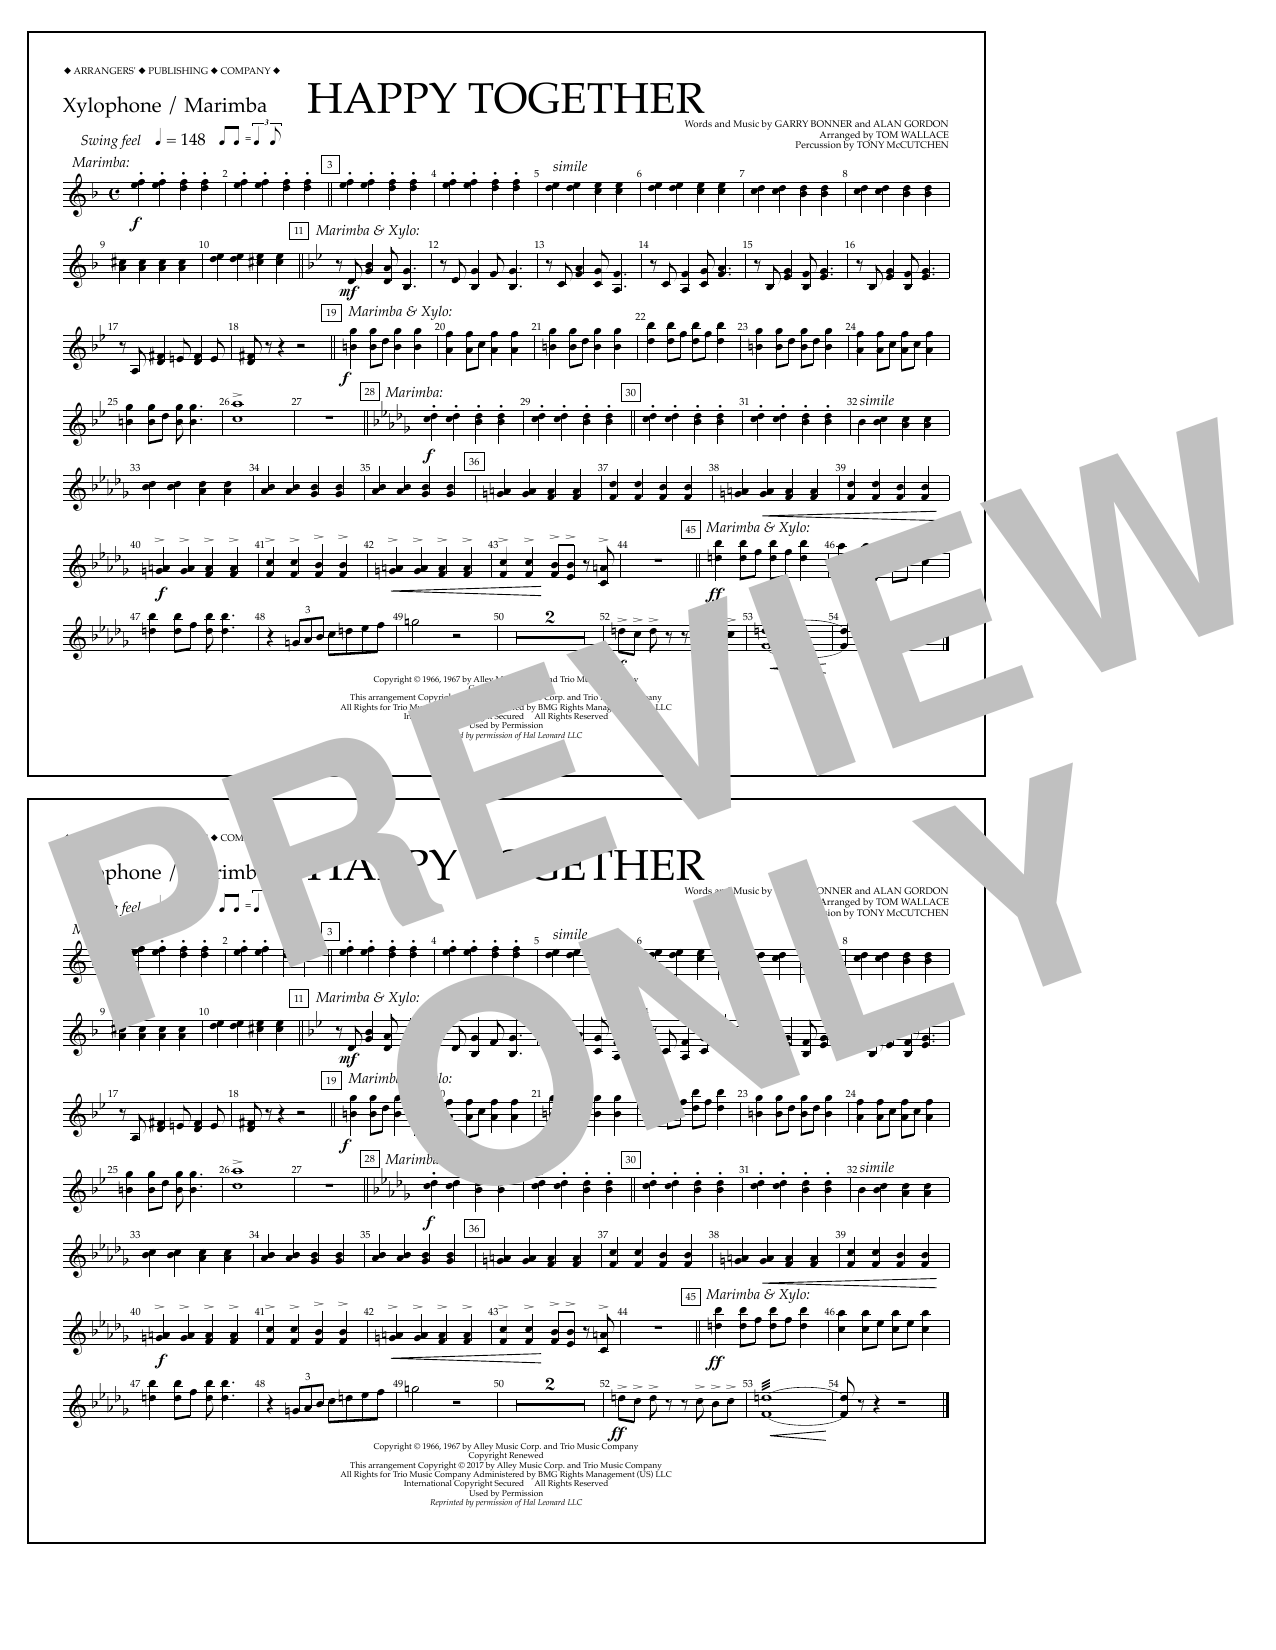 Happy Together - Xylophone/Marimba Sheet Music